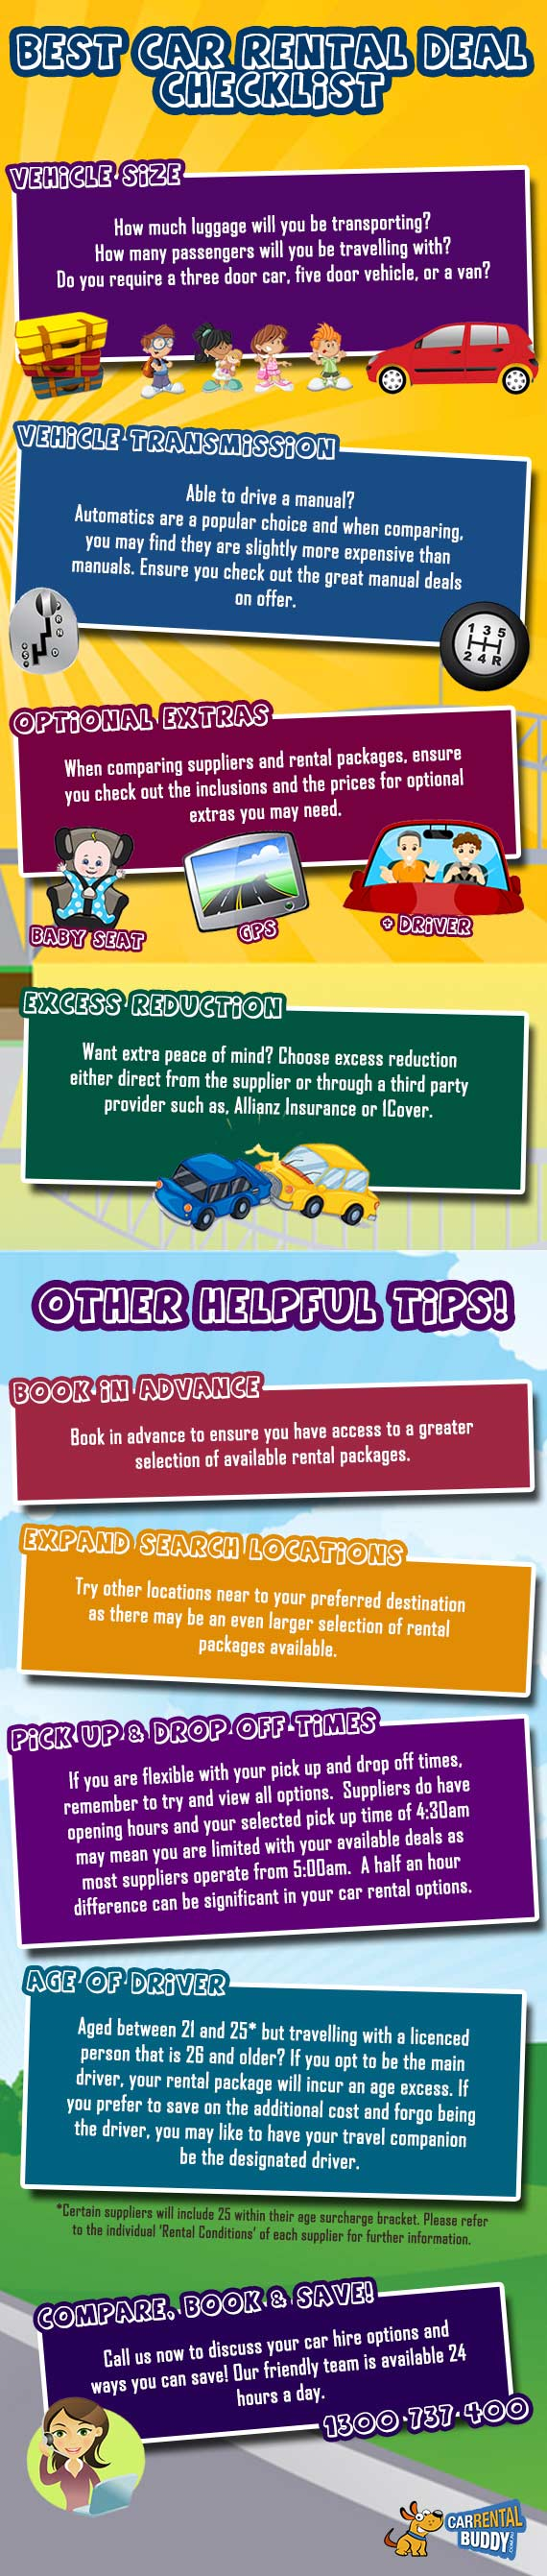 Guide to Getting the Best Car Rental Deal